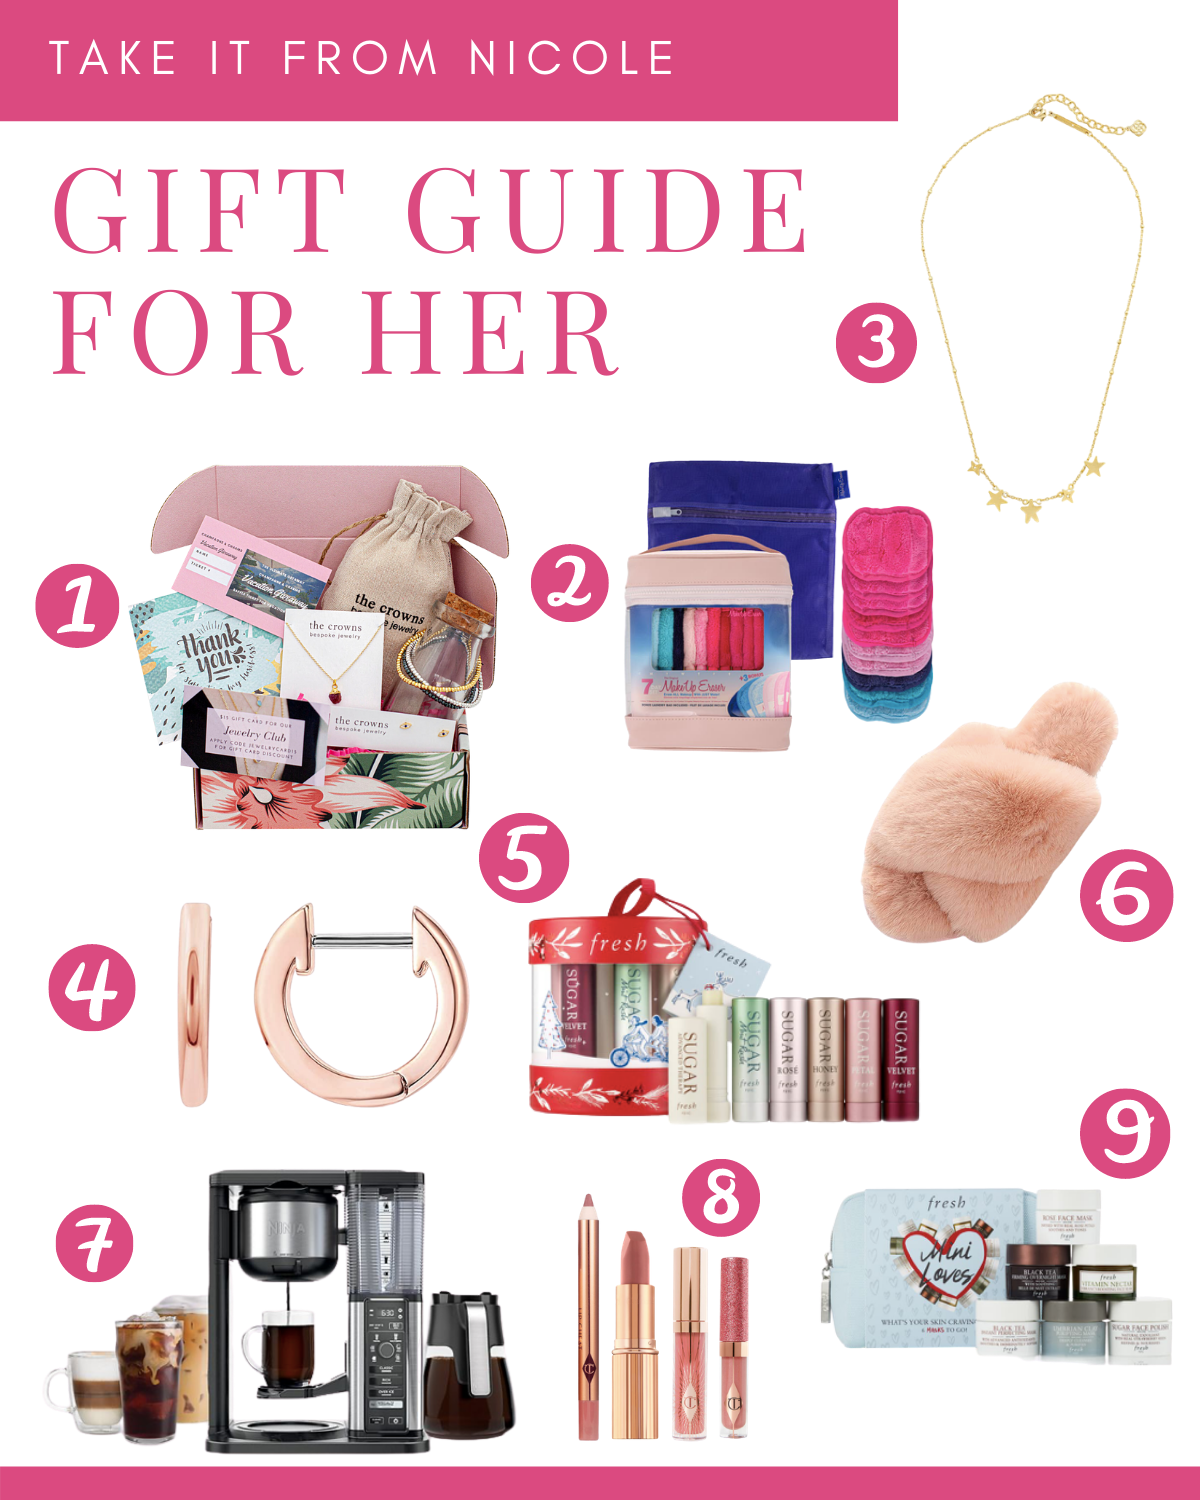 Christmas and holiday gift guide for her. Whether you are shopping for your girlfriends, mother, or yourself you are sure to find something! I tried to keep in mind that we are spending a lot more time at home and include some fun beauty items to pamper her. Hits a variety of price points.